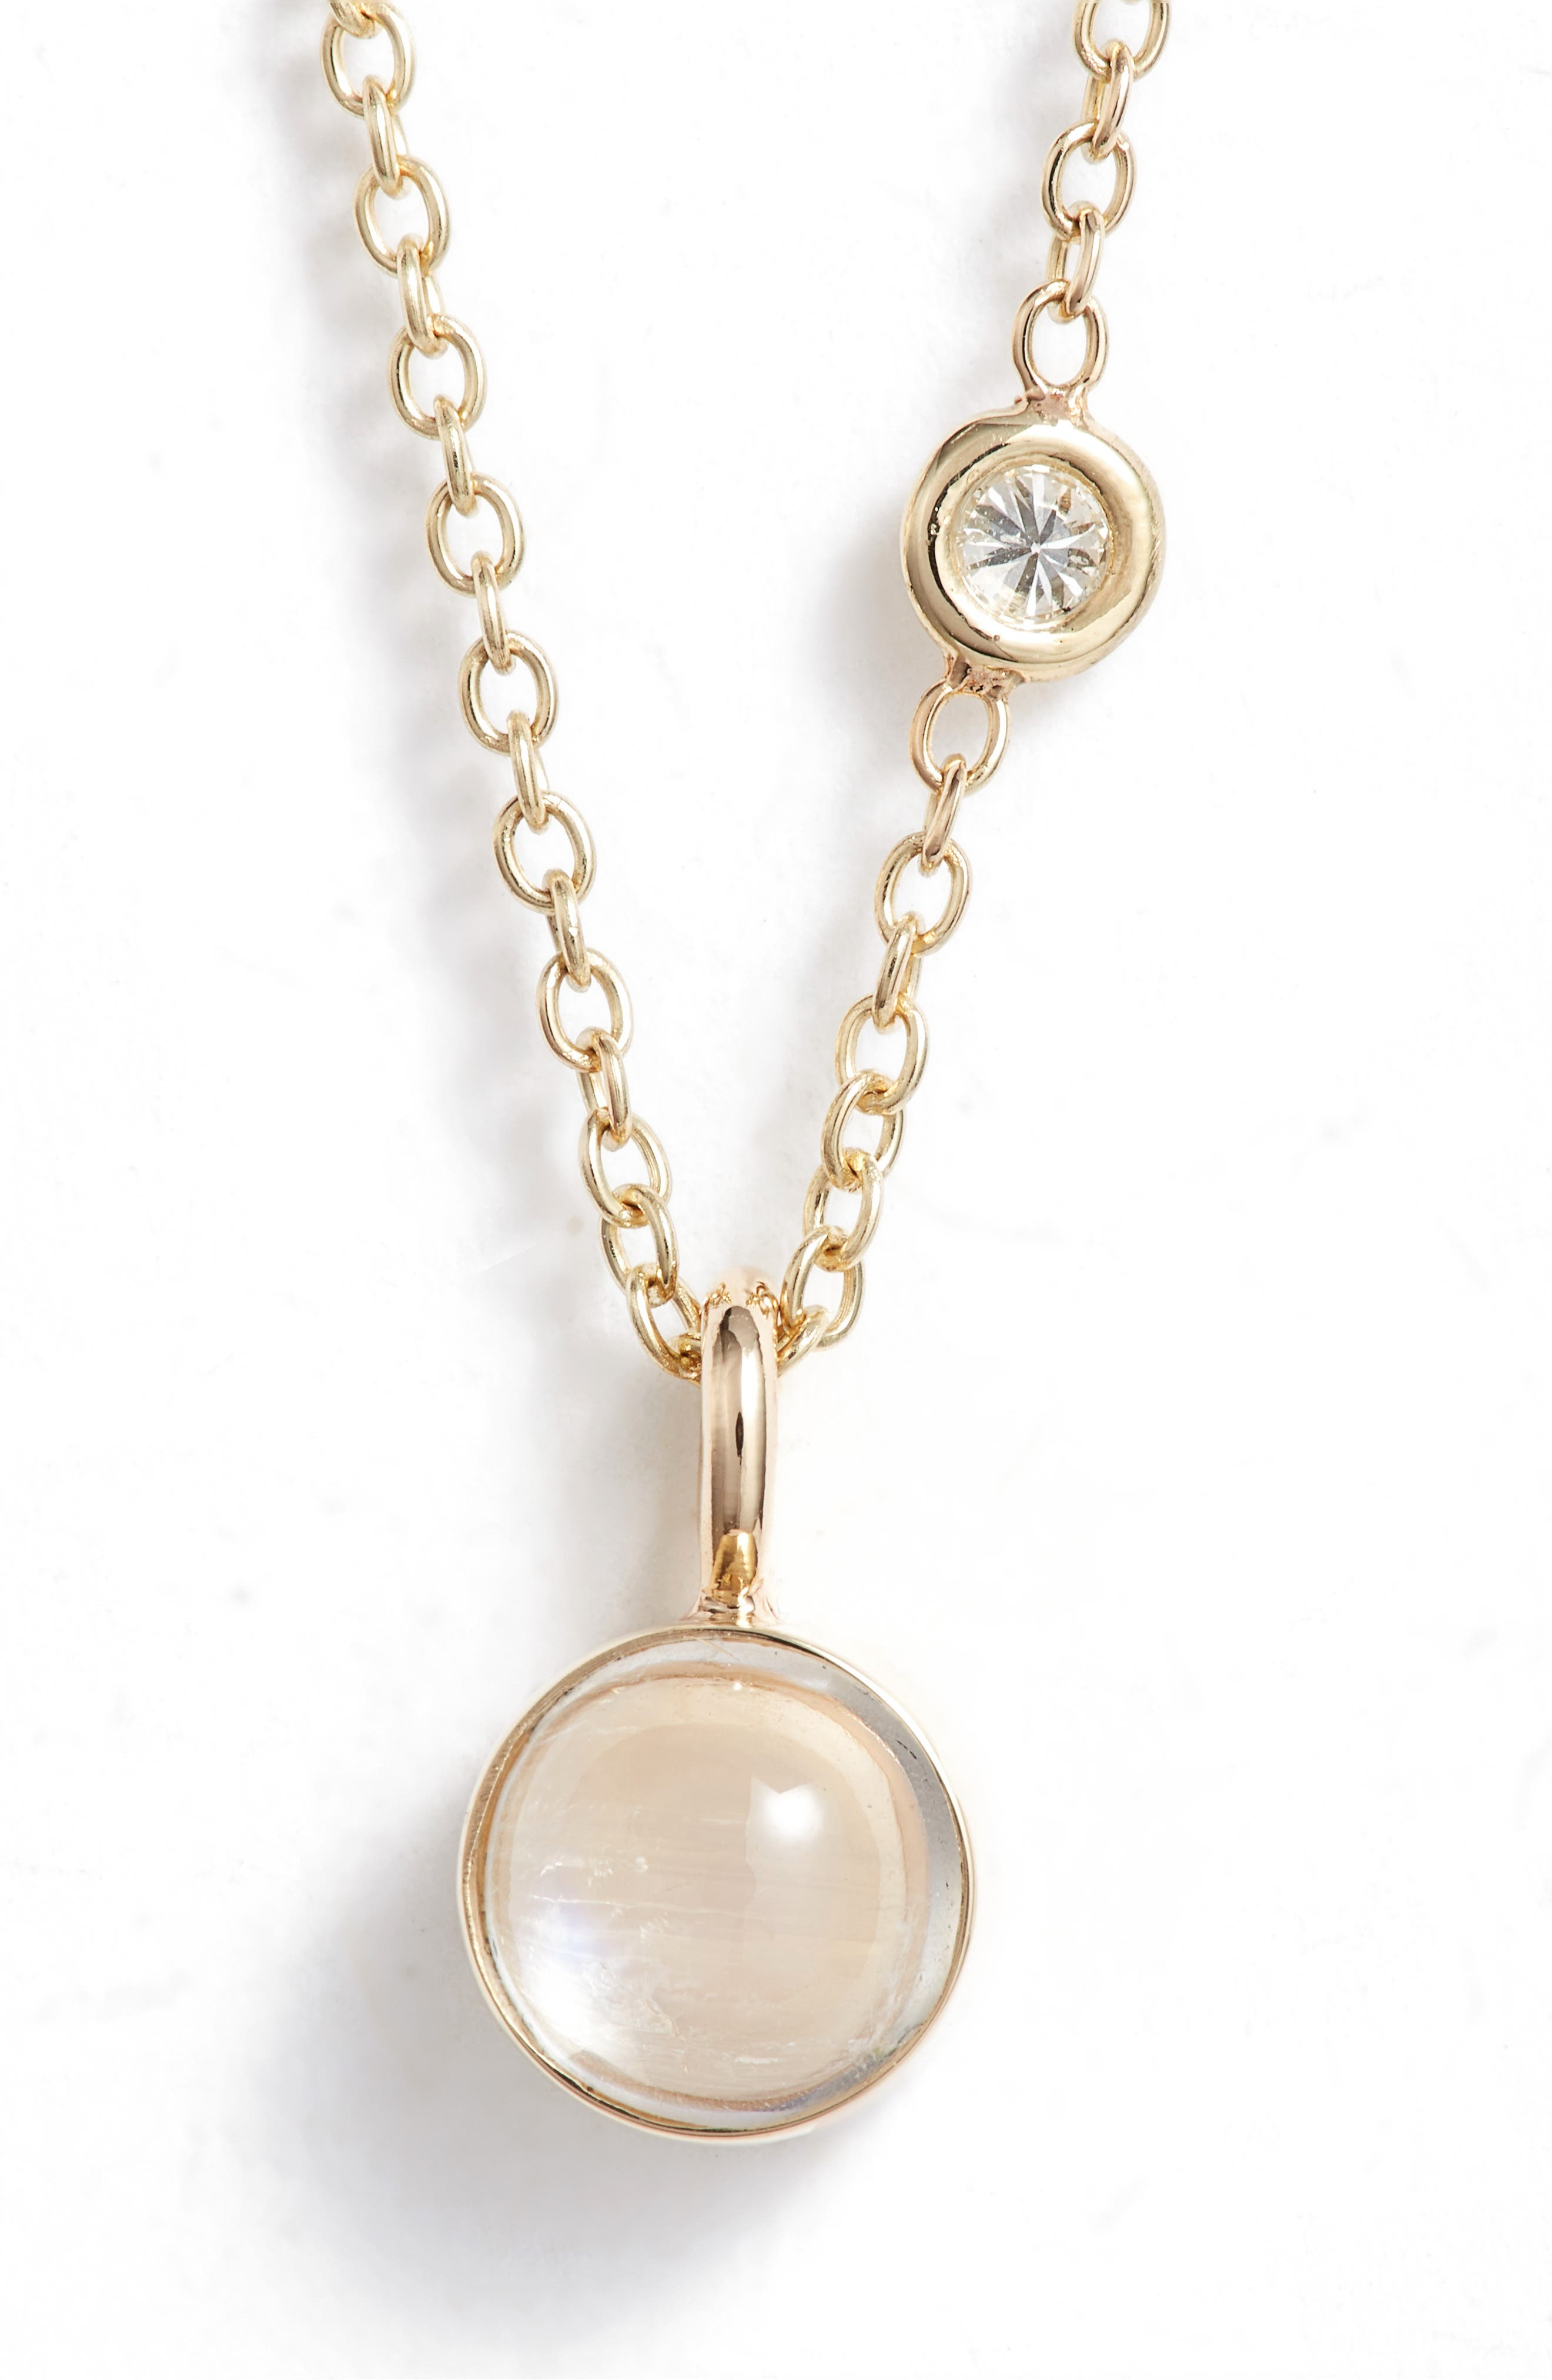 Moonstone & Diamond Pendant Necklace,                             Main thumbnail 1, color,                             YELLOW GOLD/ MOONSTONE